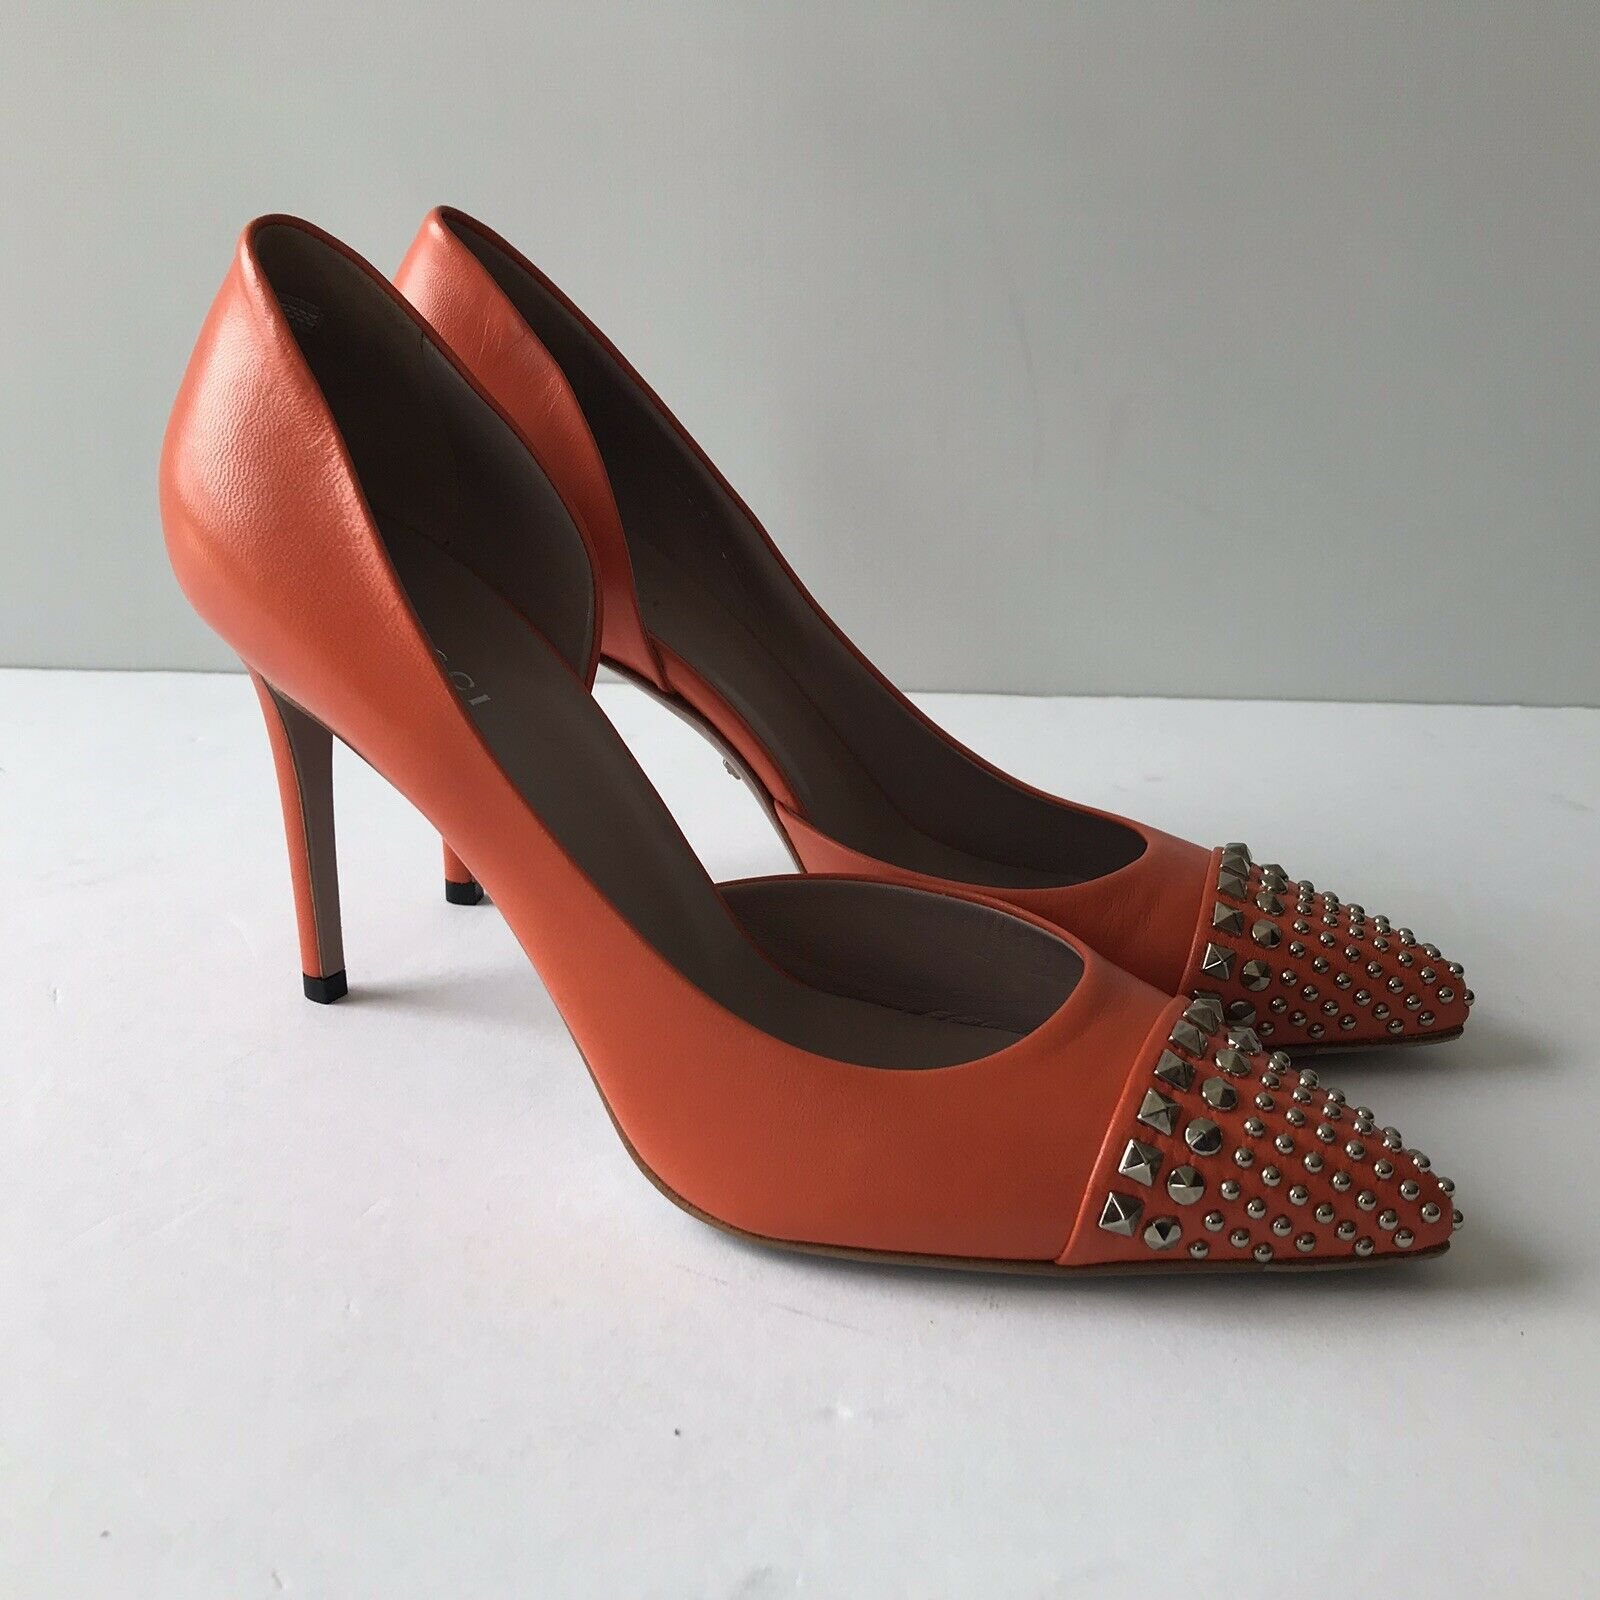 Primary image for W-1705105 New Gucci Malaga Kid Leather Orange Studded Pumps Size 39 US 9